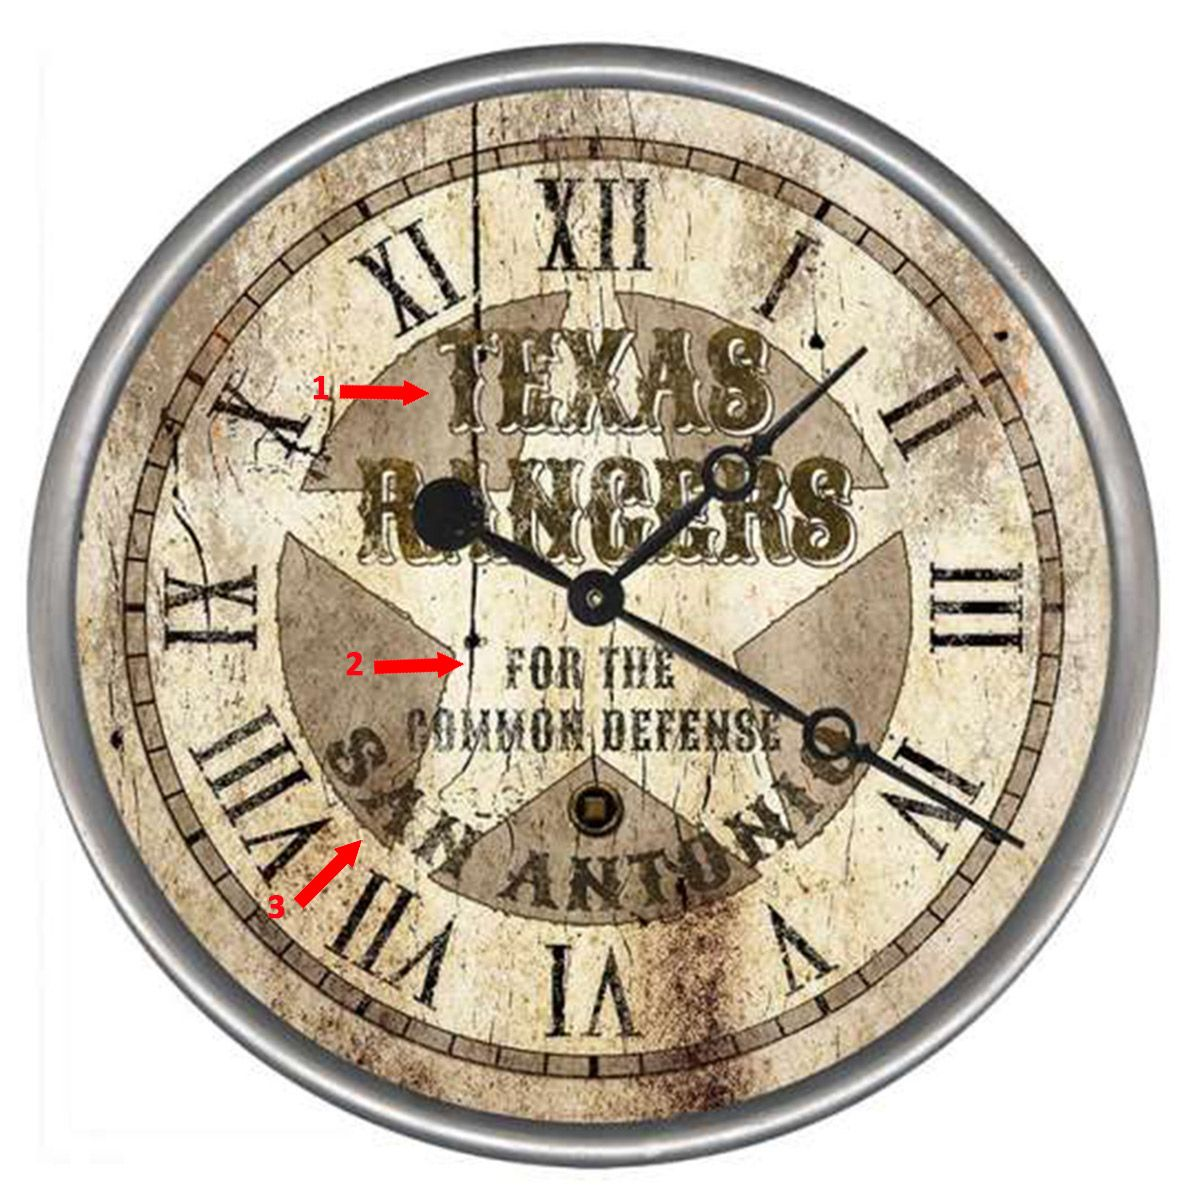 Rangers Defense Personalized Wall Clock